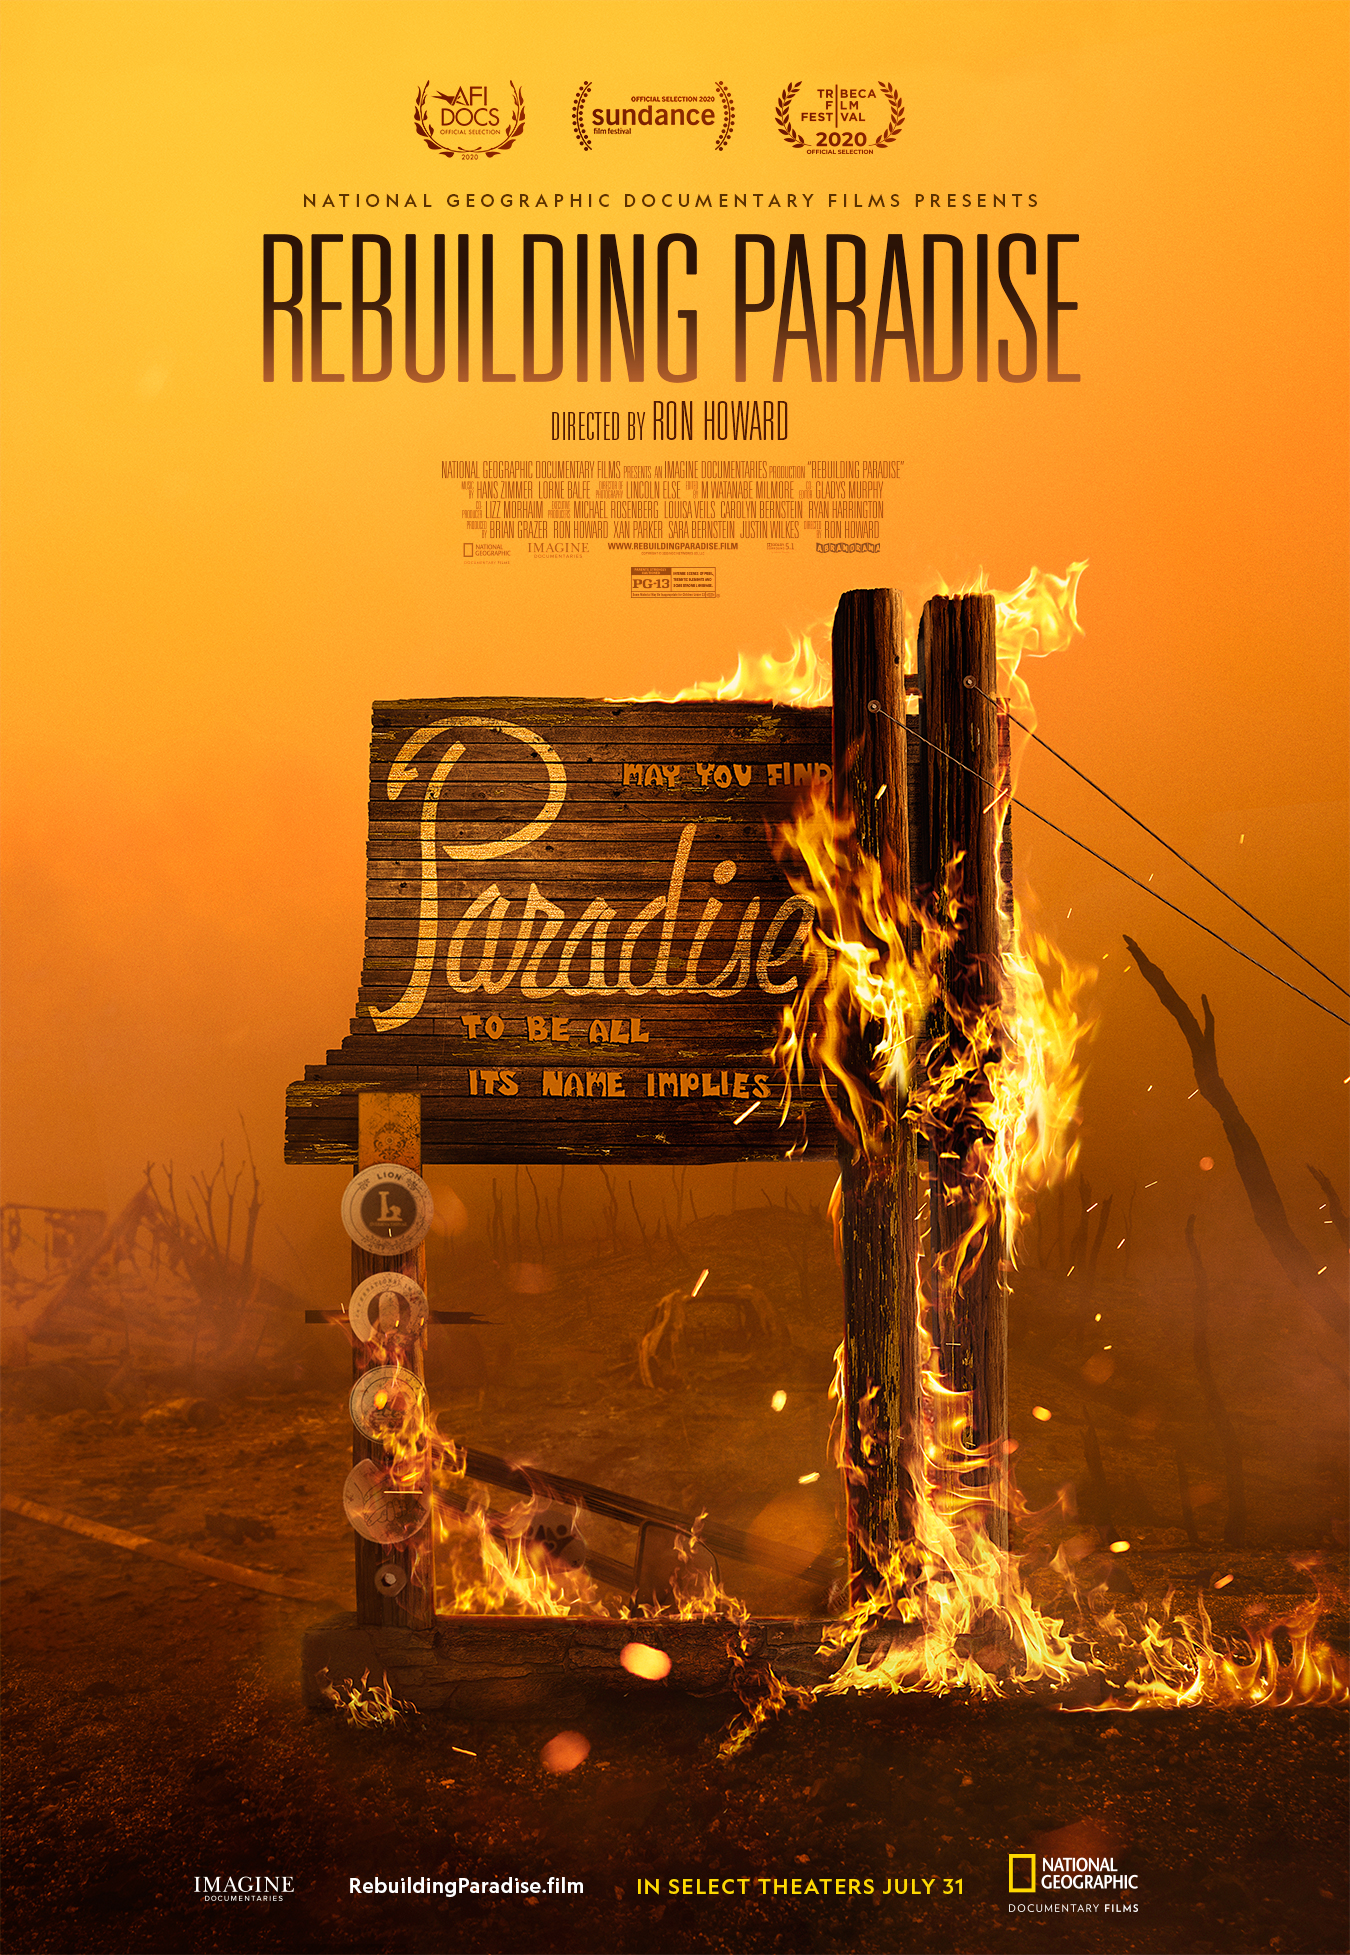 National Geographic Documentary Films To Release 'Rebuilding Paradise' From Academy Award-Winning Director Ron Howard